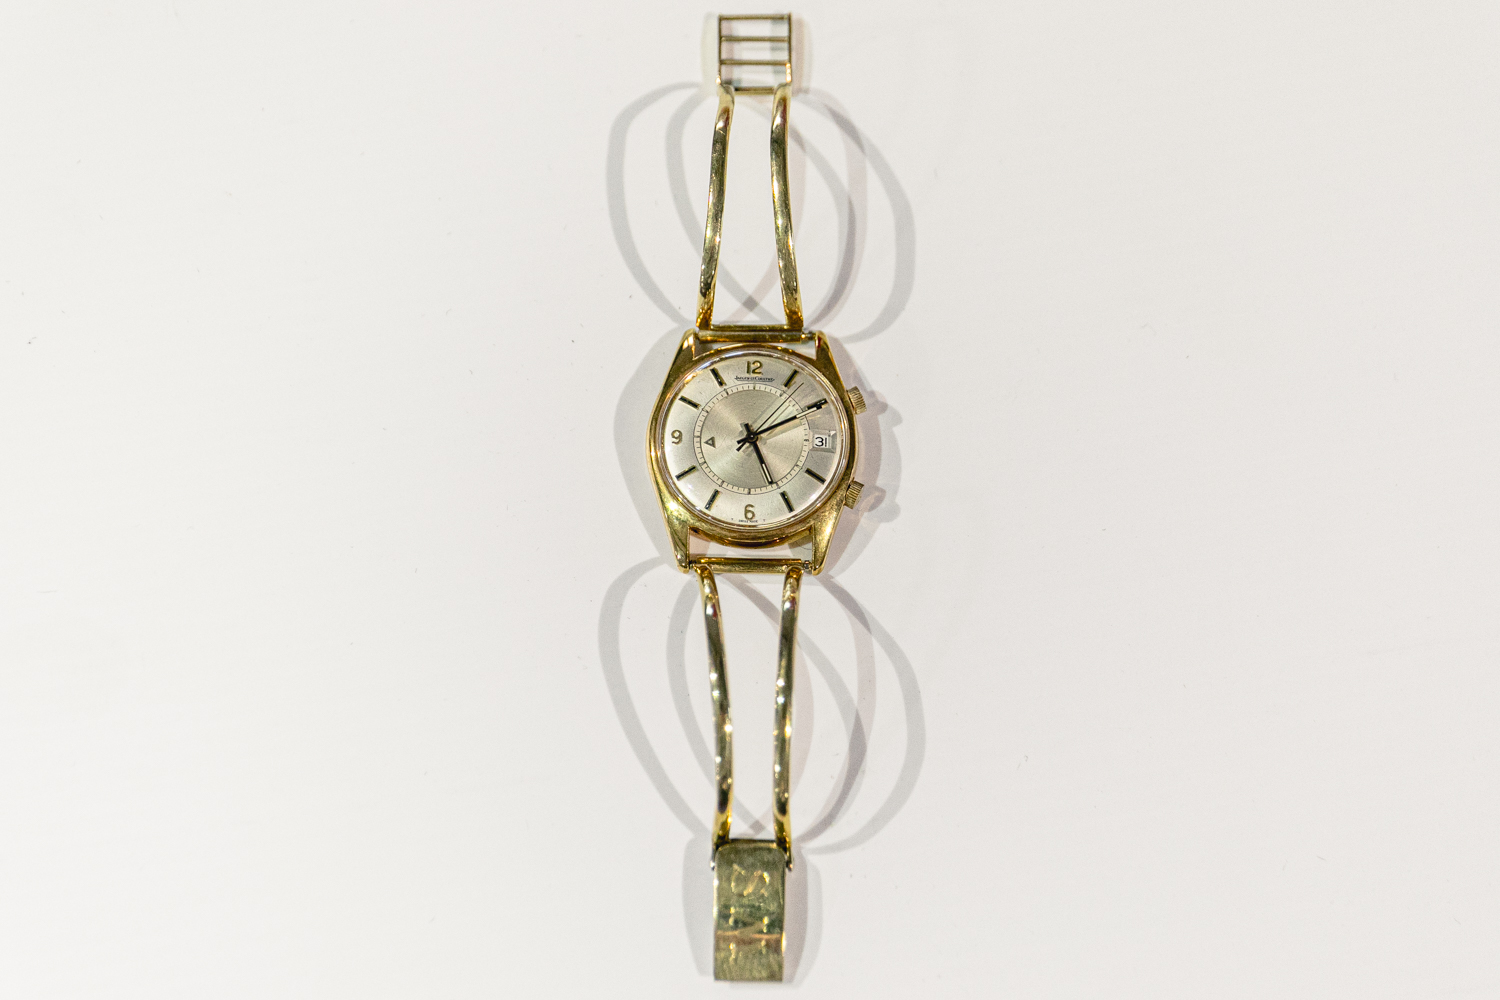 The solid gold twin bar watch band worn by Stirling Moss for 38 years!